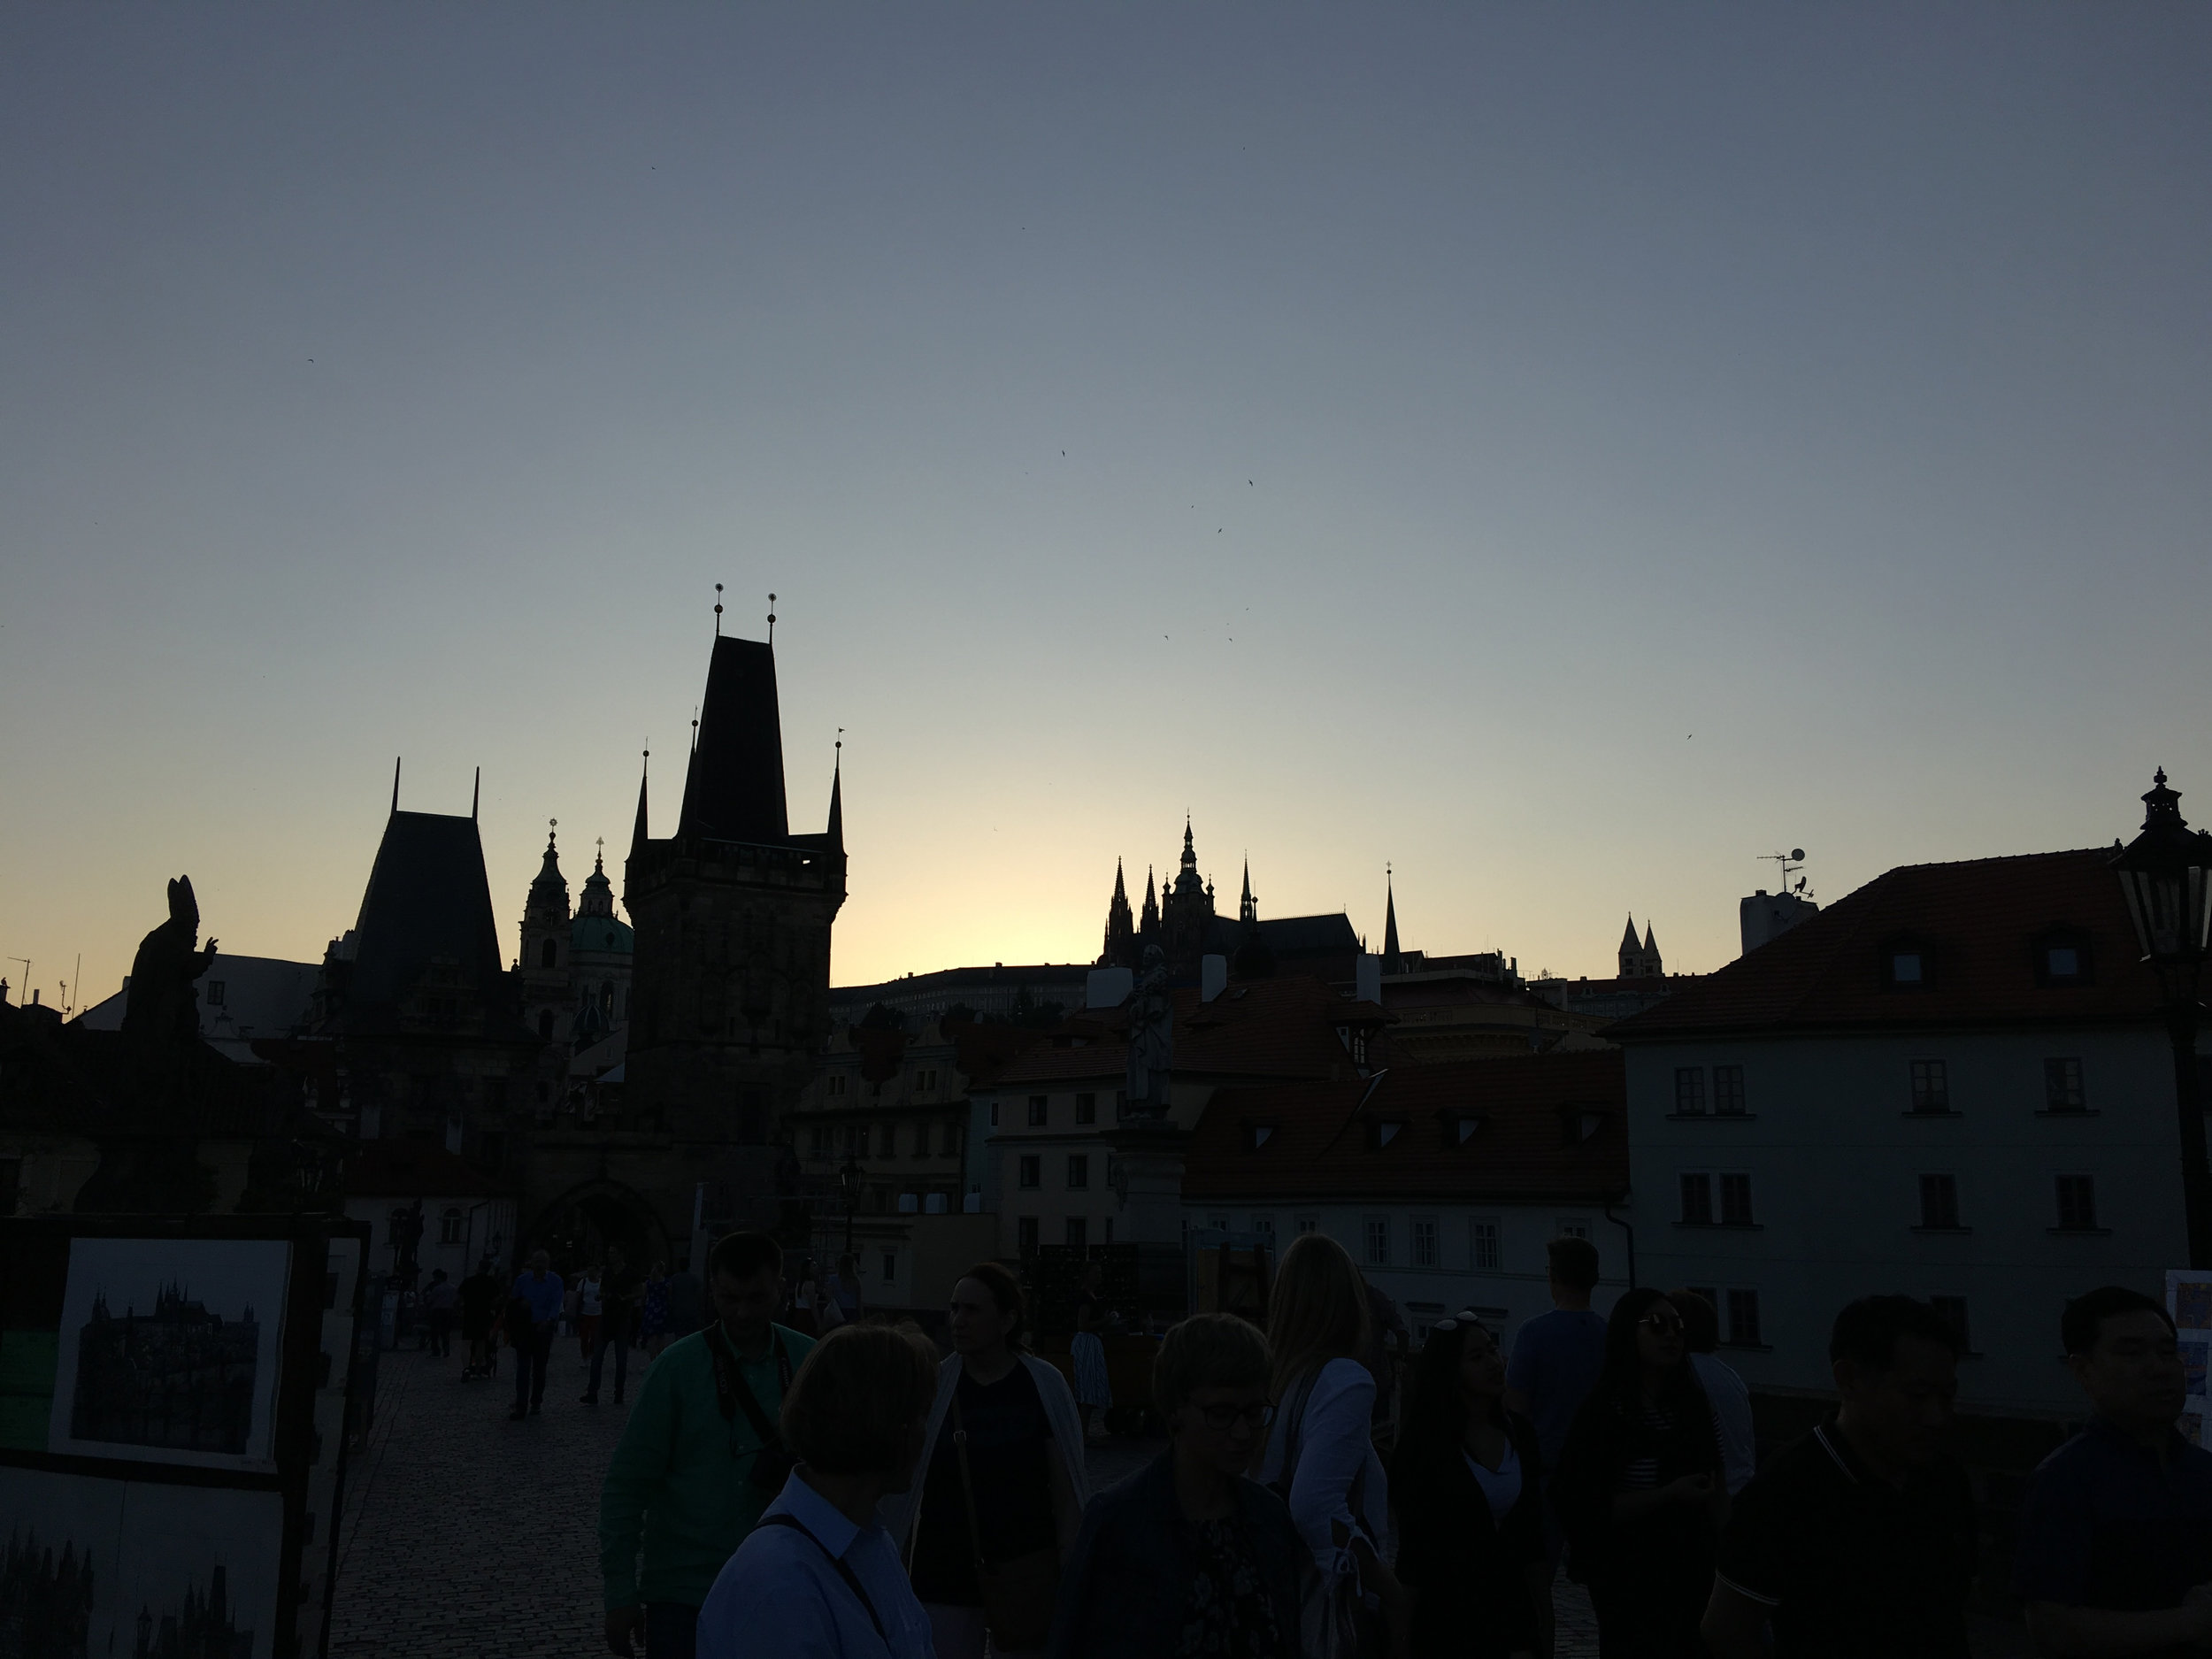 Prague silouette.jpeg